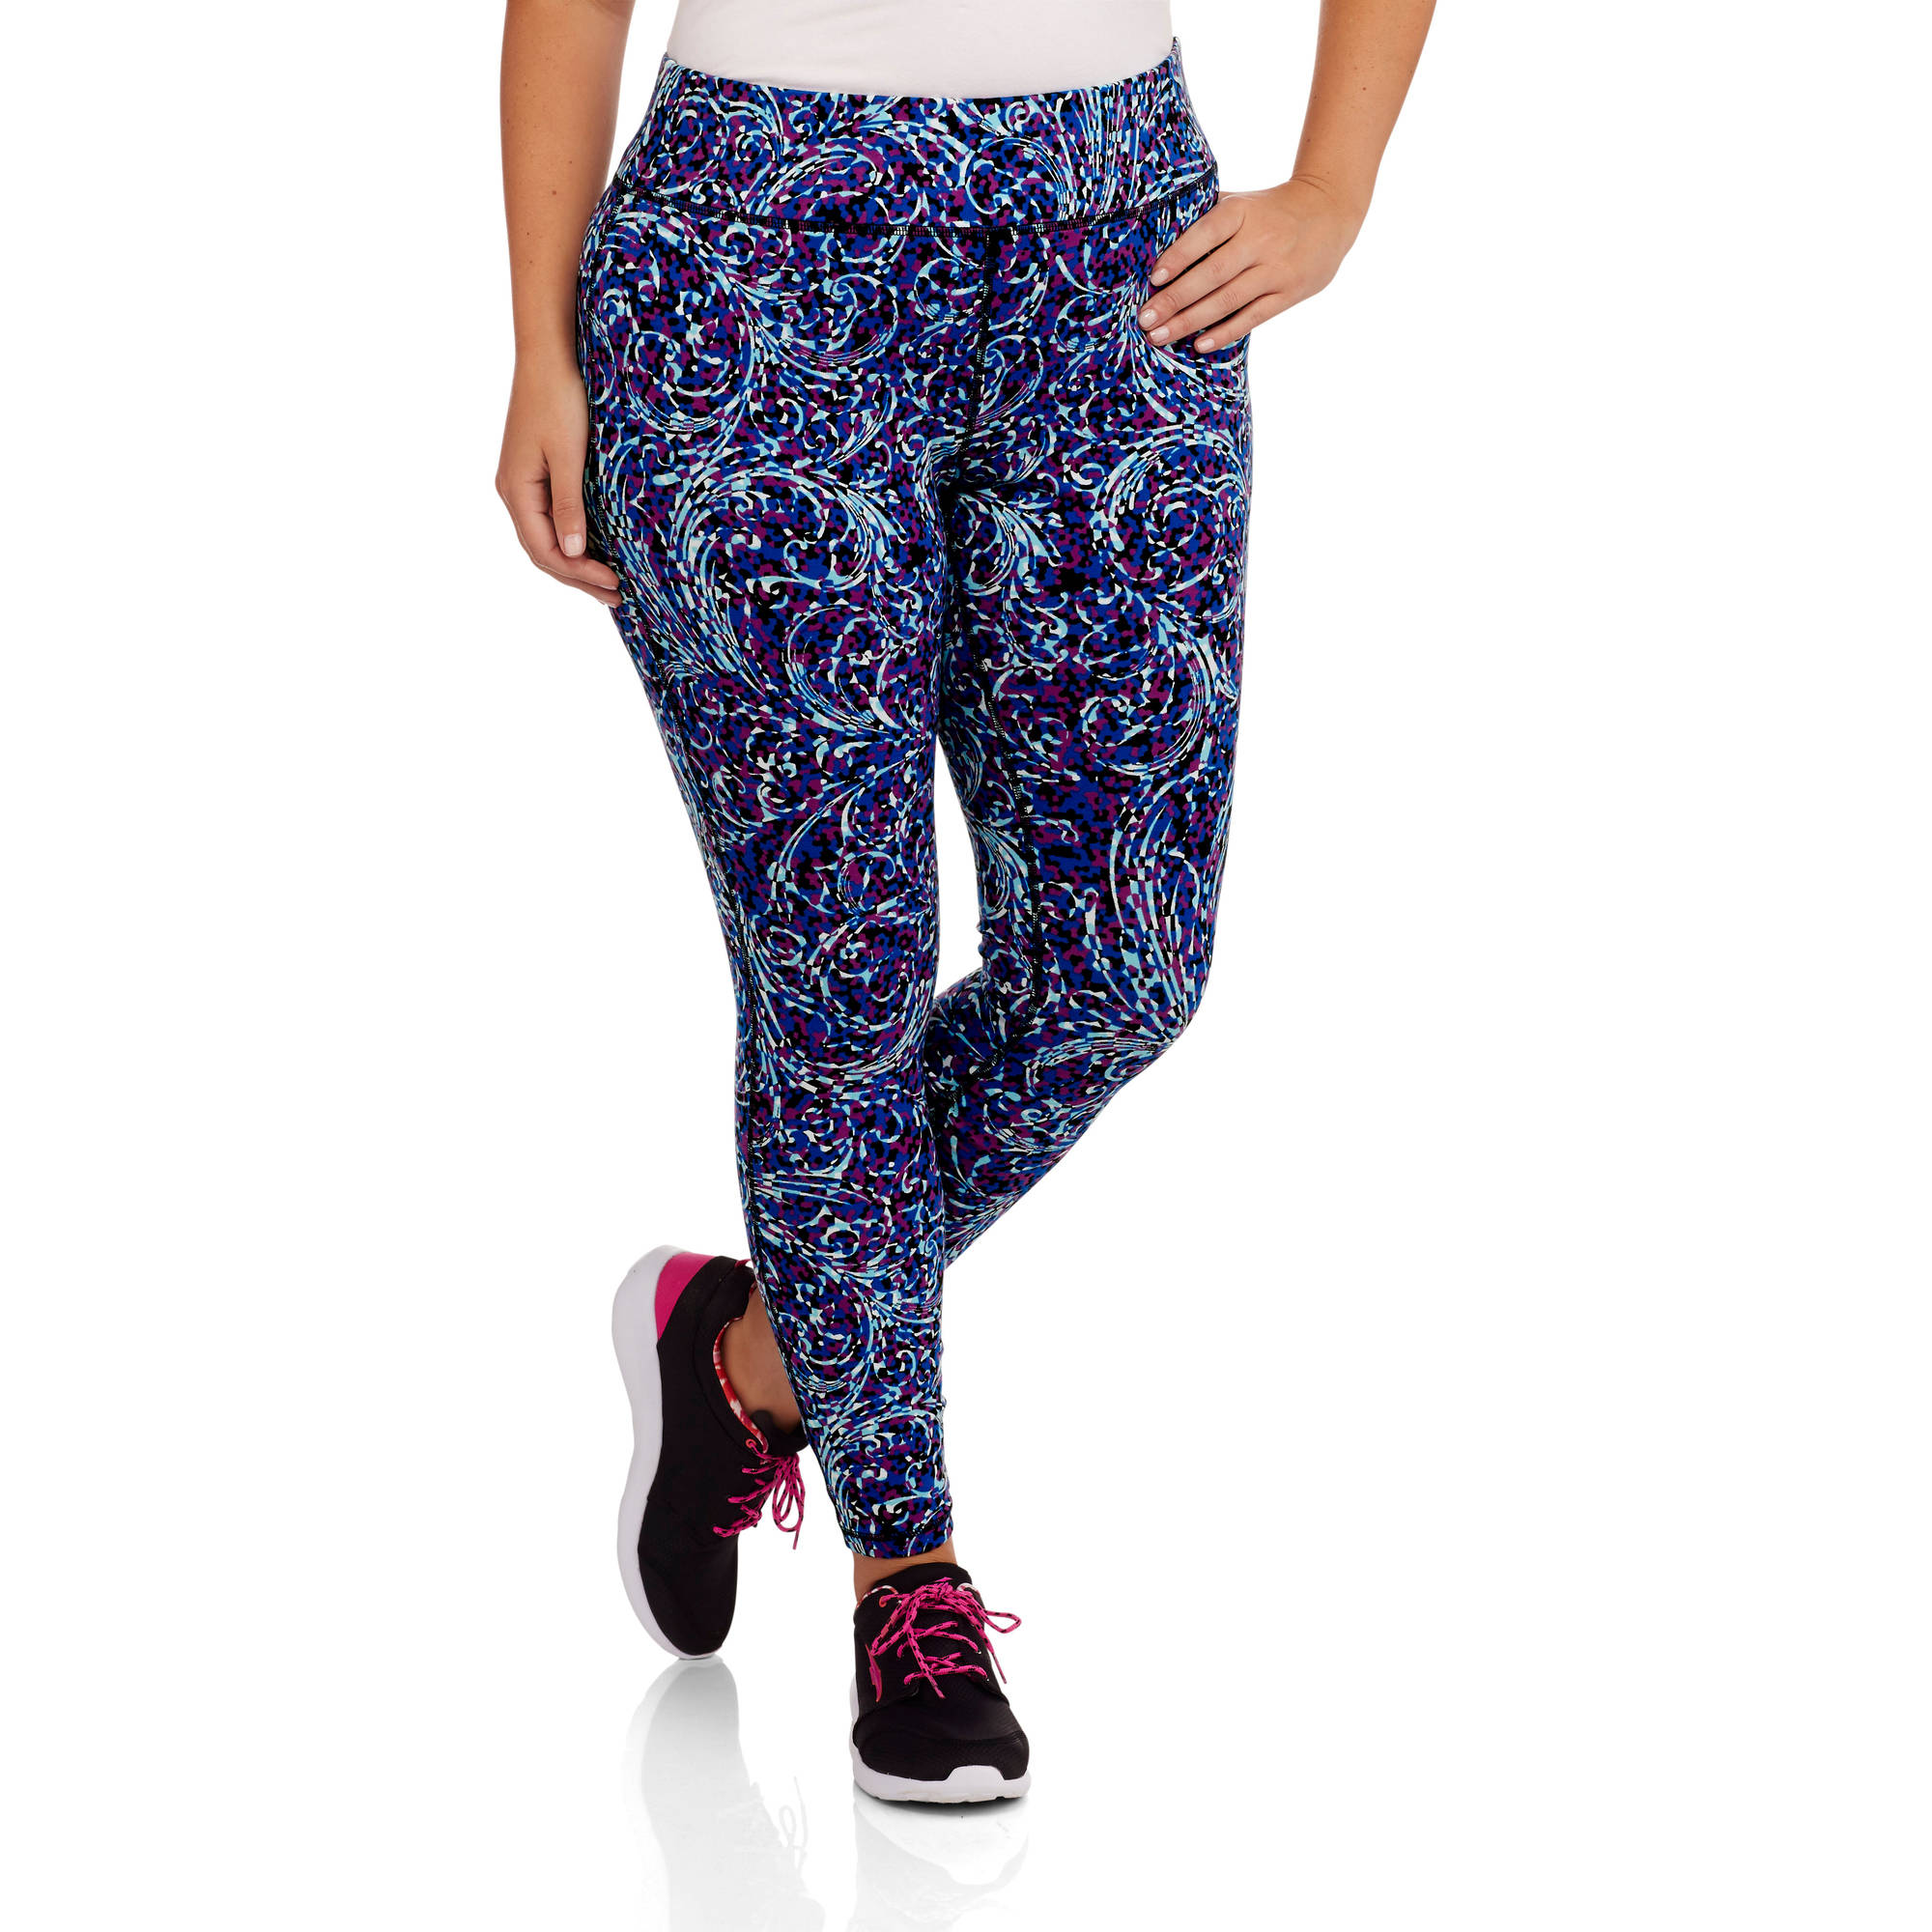 Danskins Now Women's Plus-Size All Over Print Legging